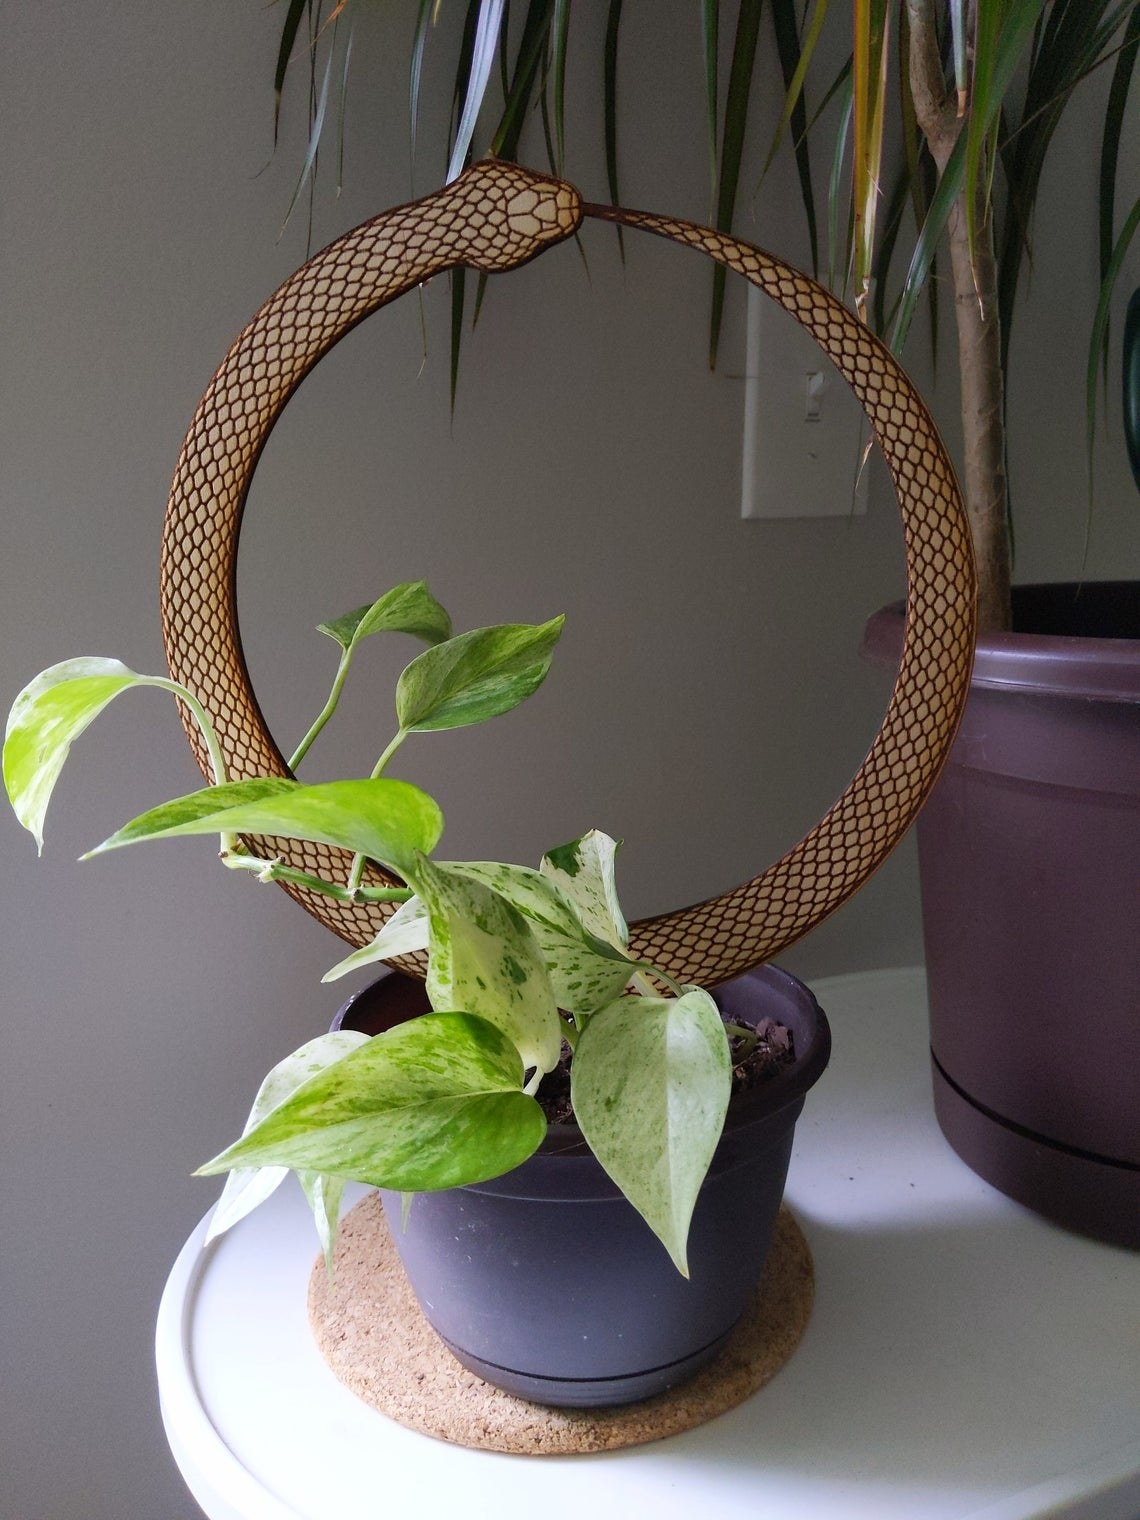 wooden snake eating tail staked in houseplant